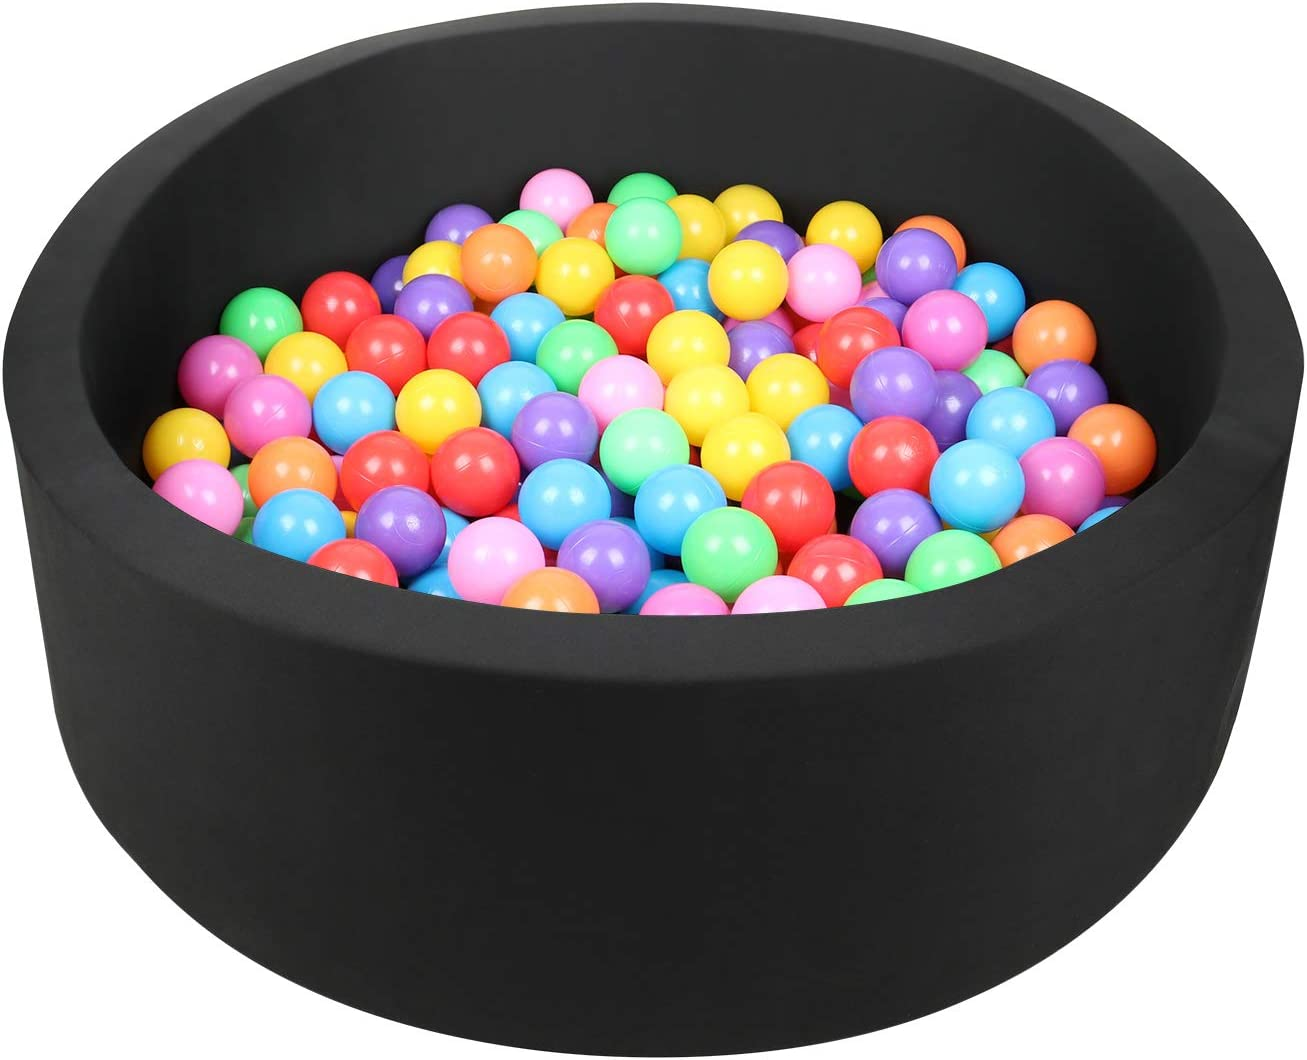 Smooth Surface /& Non-slip Bottom Children/'s Toddlers Room Decoration Small Foamic Round Ball Pit Ball Pool with 200 Balls